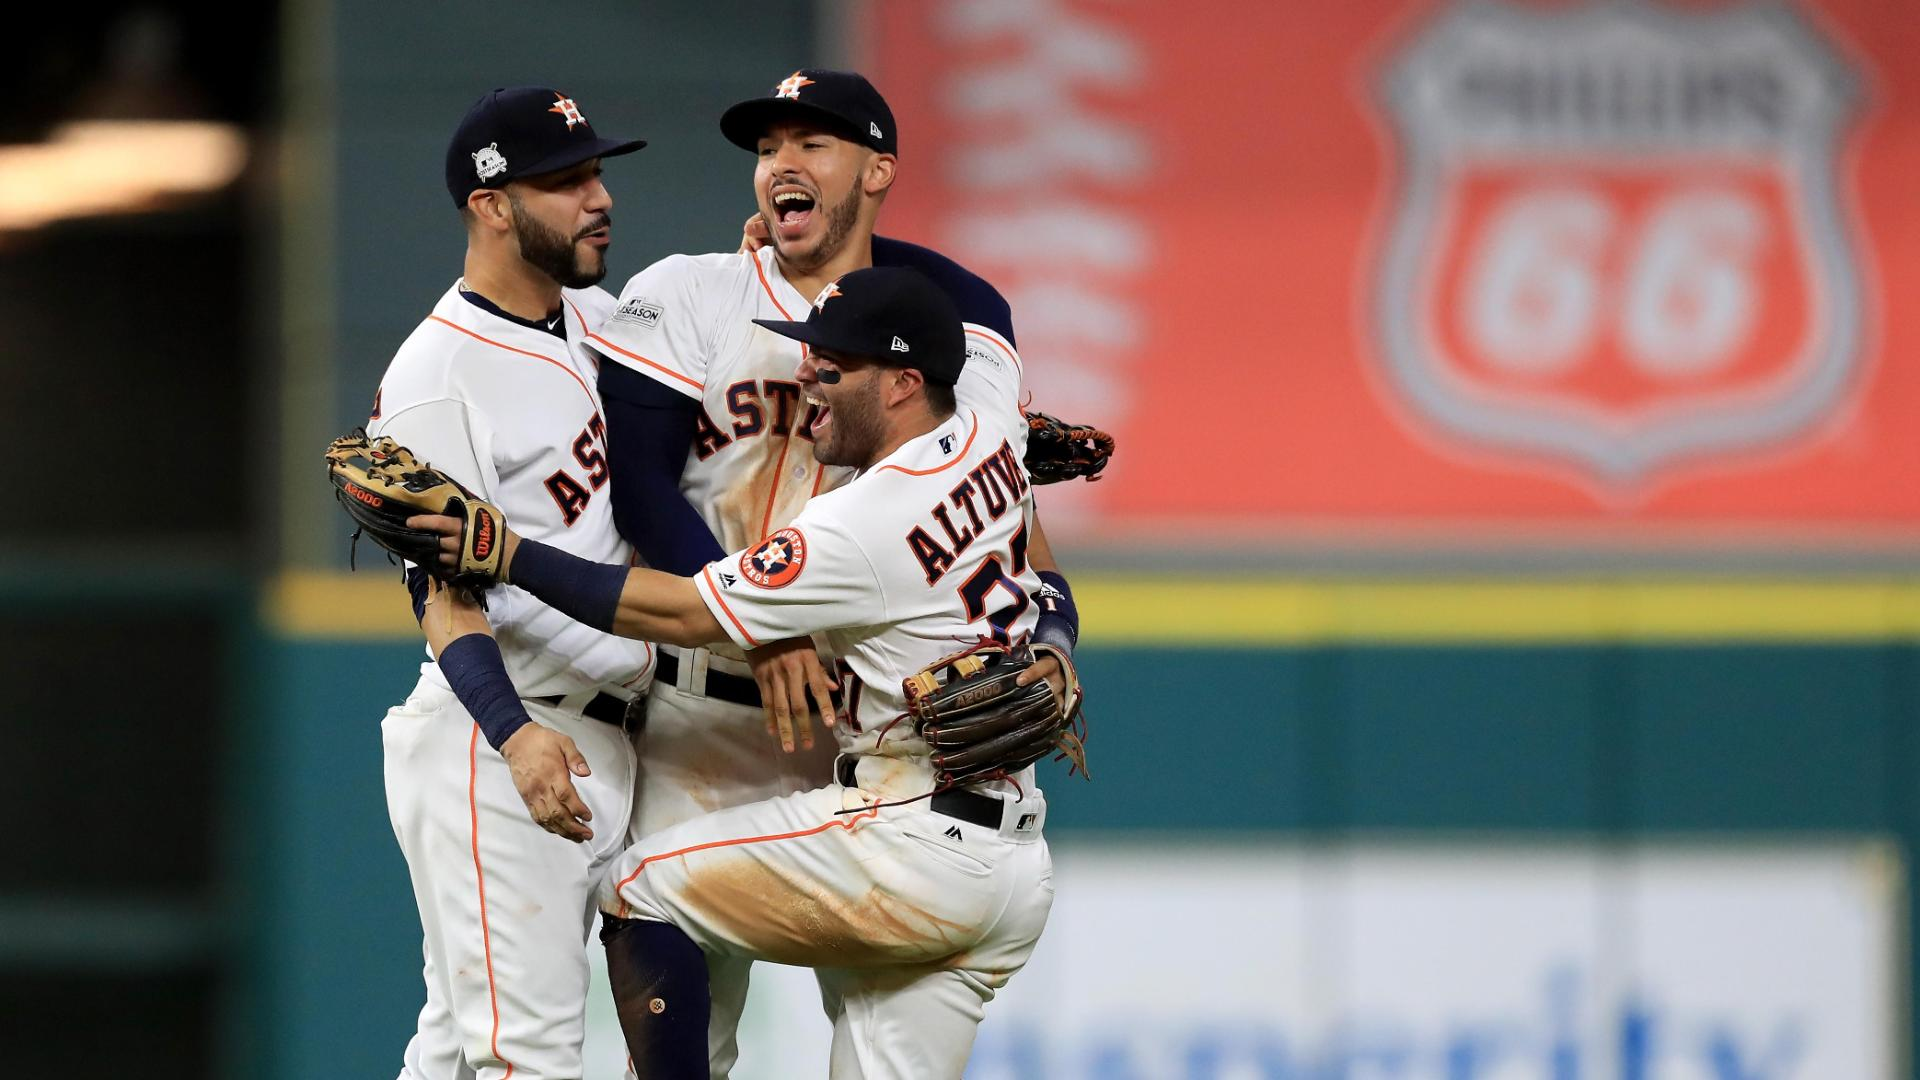 http://a.espncdn.com/media/motion/2017/1022/dm_171022_MLB_Astros_Game_7_Defining_Moments468/dm_171022_MLB_Astros_Game_7_Defining_Moments468.jpg